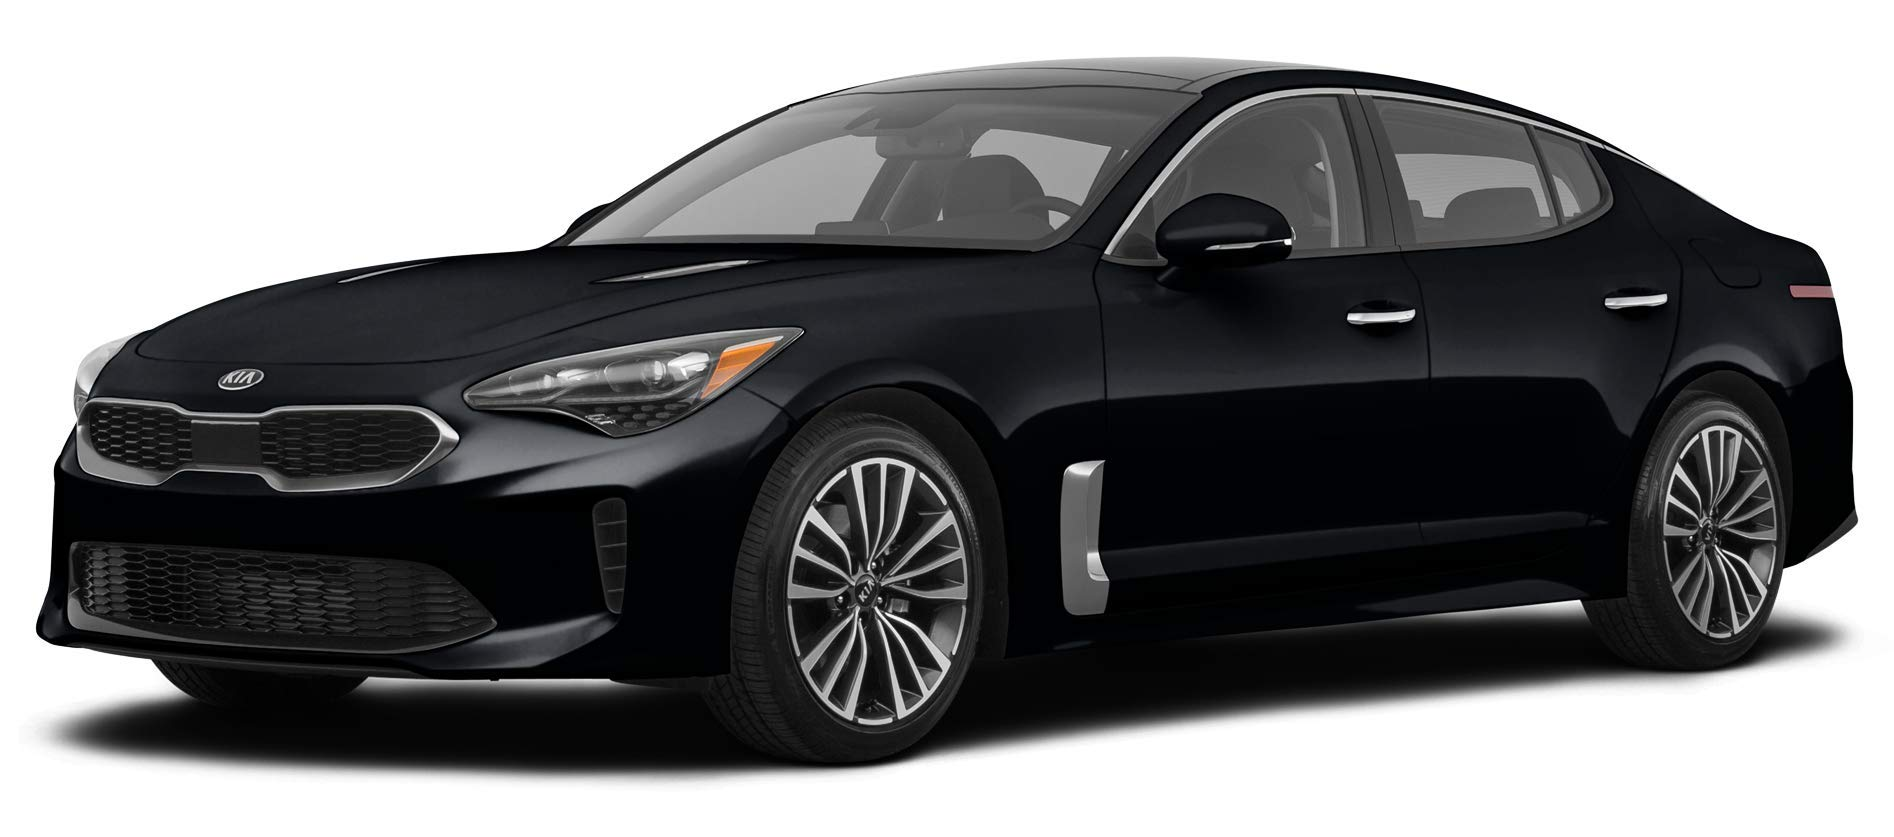 amazon com 2019 kia stinger base reviews images and specs vehicles amazon com 2019 kia stinger base